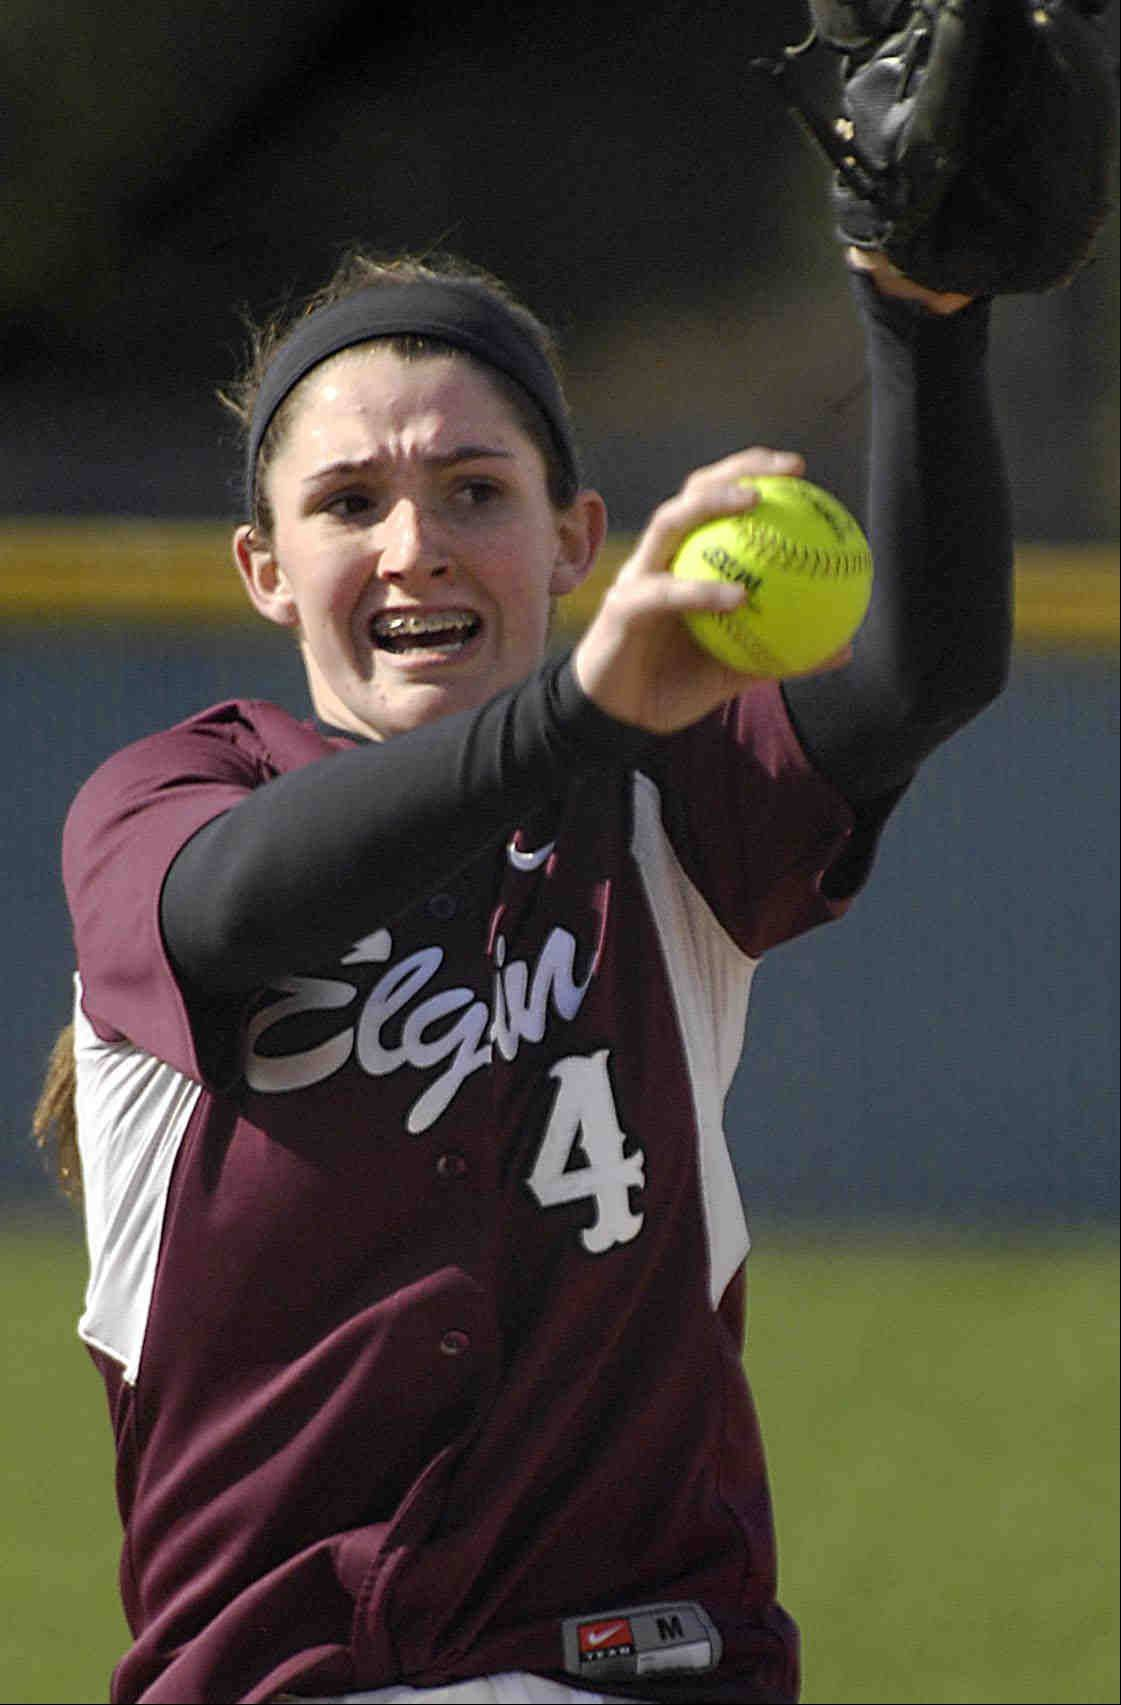 Elgin�s Jennah Perryman struck out 17 Larkin batters and allowed no hits, while hitting two home runs Wednesday in Elgin.